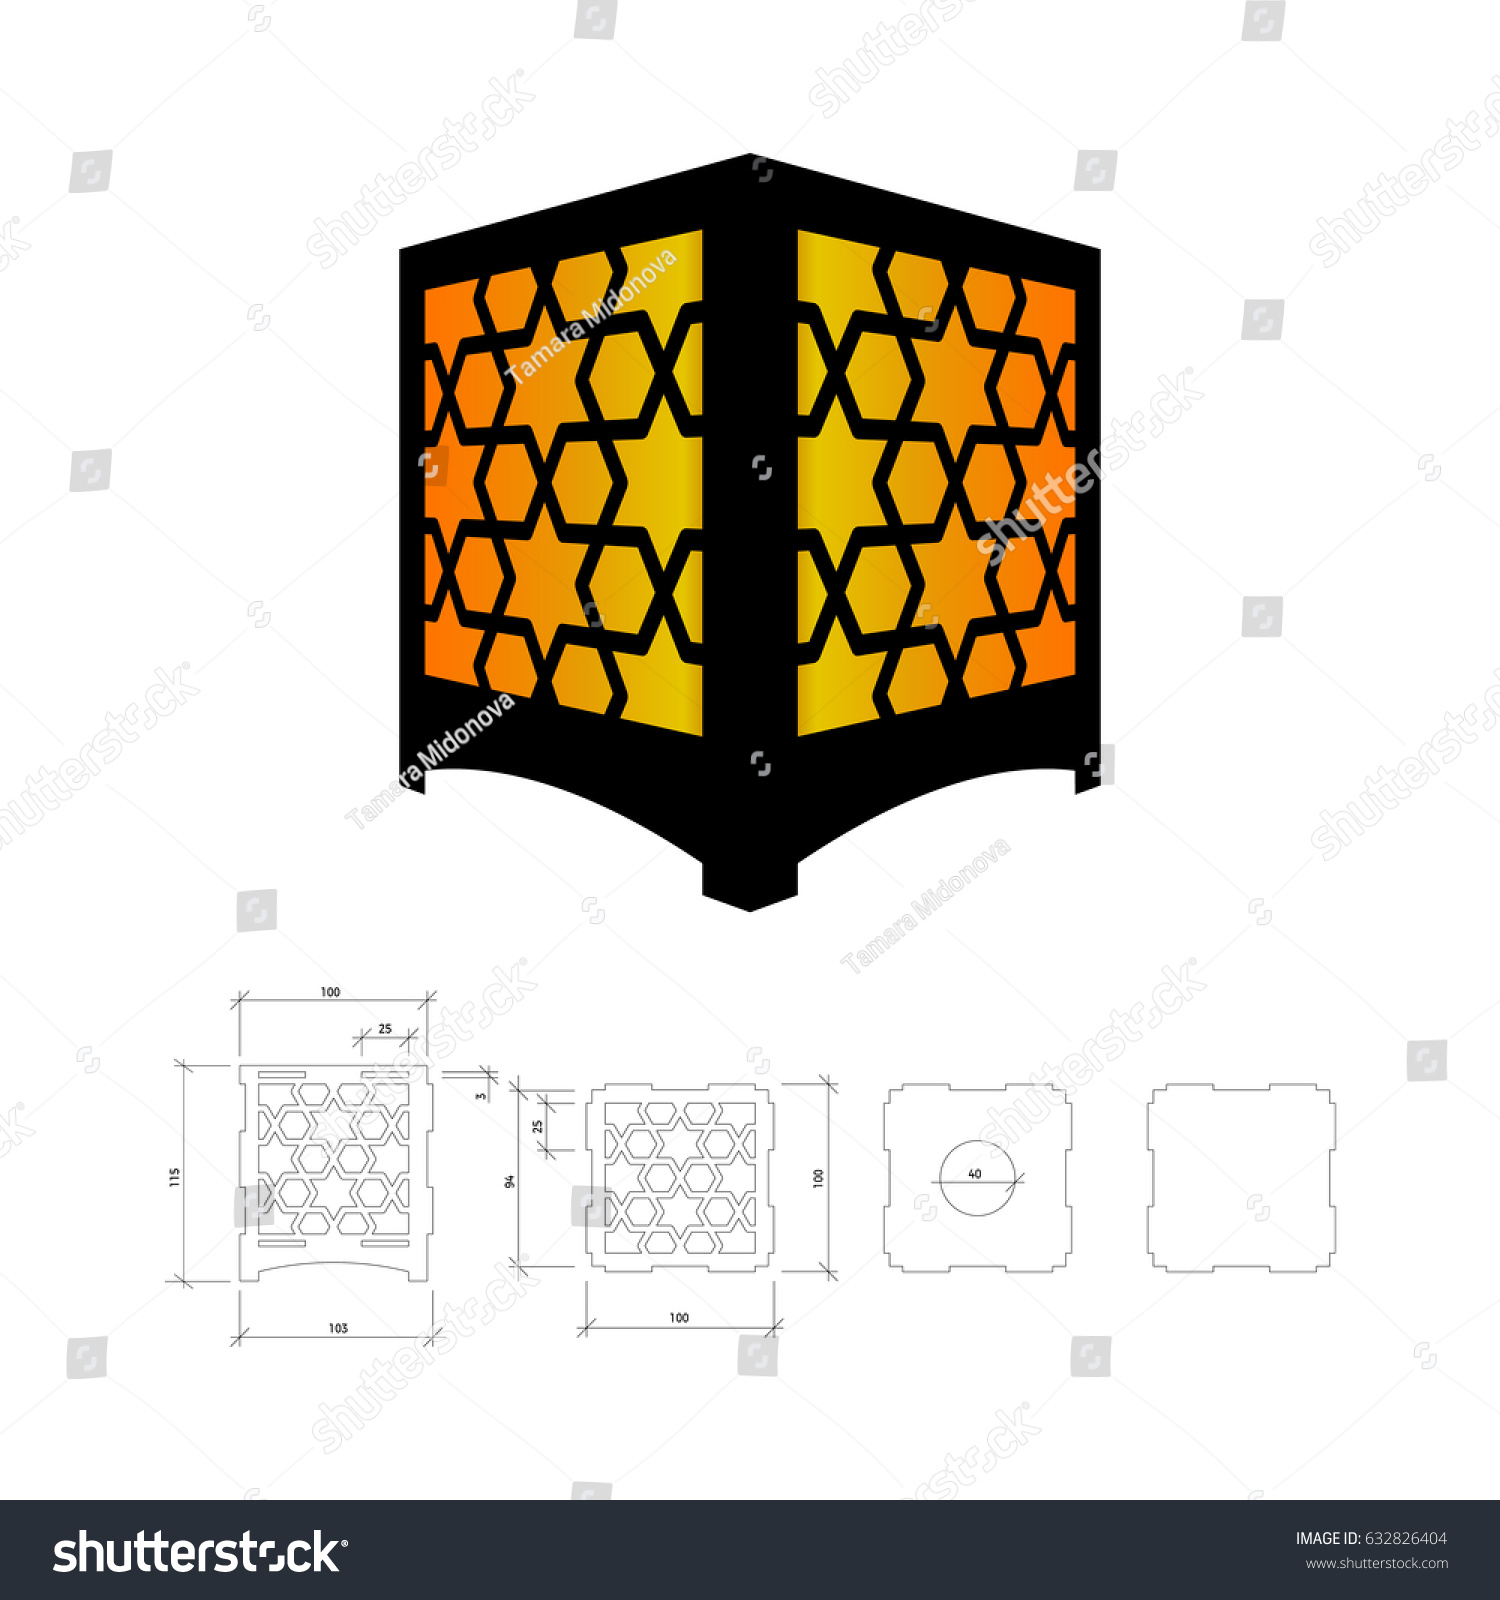 cut out template lamp candle holder stock vector 632826404. Black Bedroom Furniture Sets. Home Design Ideas